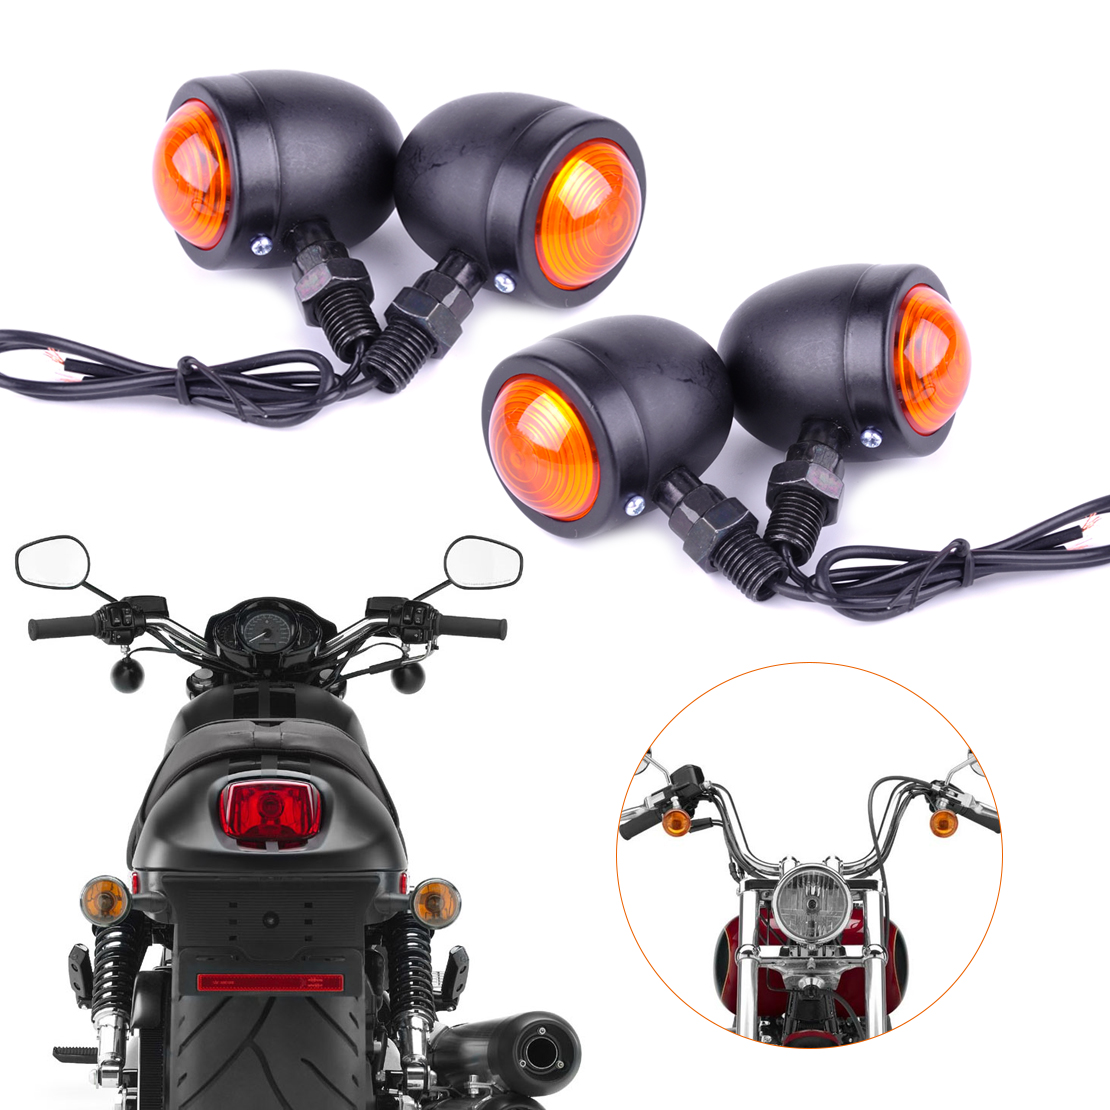 DWCX Motorcycle 4x 12V Bullet Turn Signal Indicator Lights Lamp Fit for Harley Bobber Chopper Yamaha Suzuki Kawasaki Dirt Bike